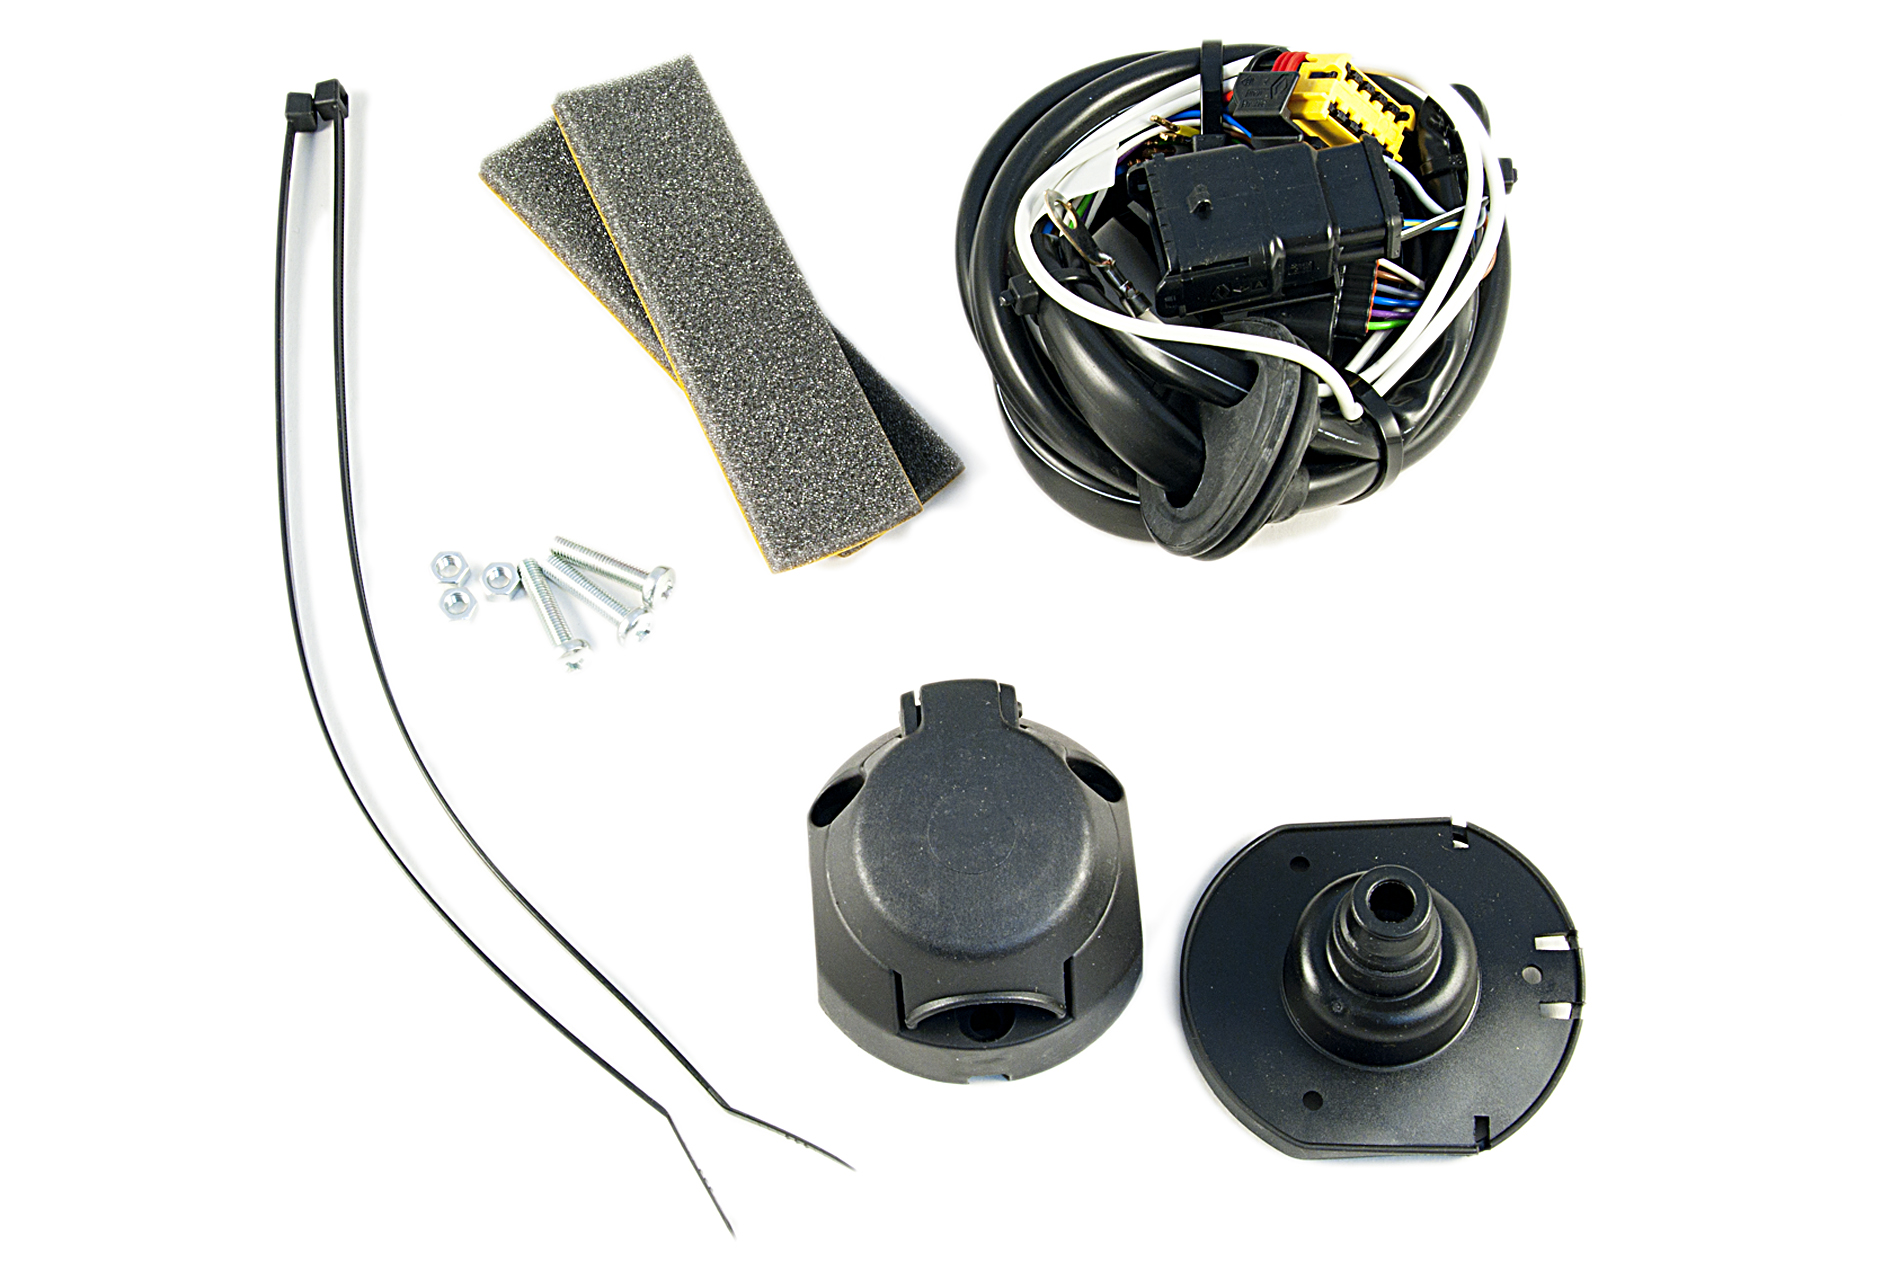 nissan genuine 7 pin electrical kit wiring for tow bar towbar hitch ke50500qjp ebay